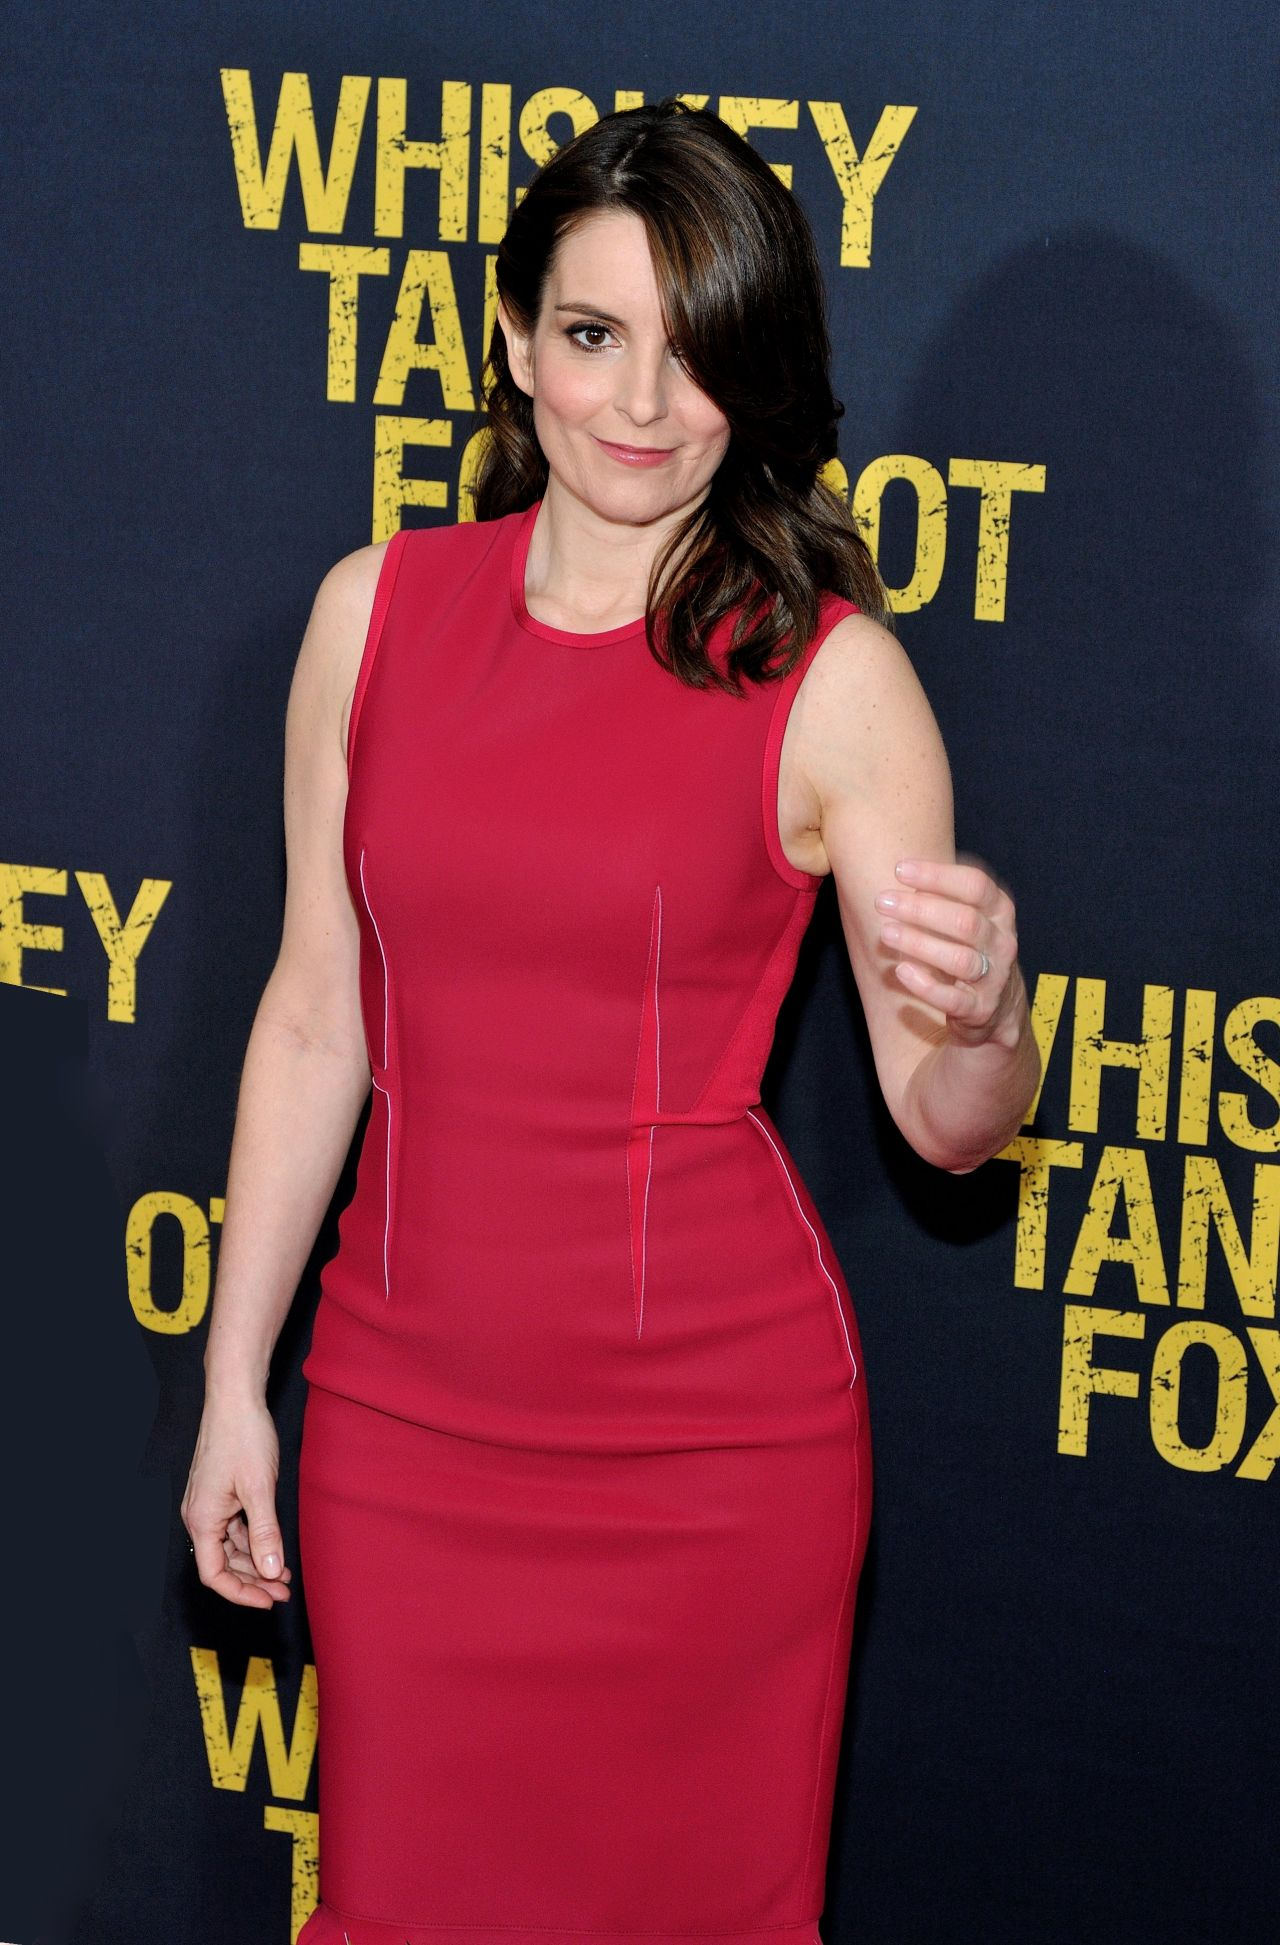 tina-fey-whiskey-tango-foxtrot-premiere-in-new-york-city-3